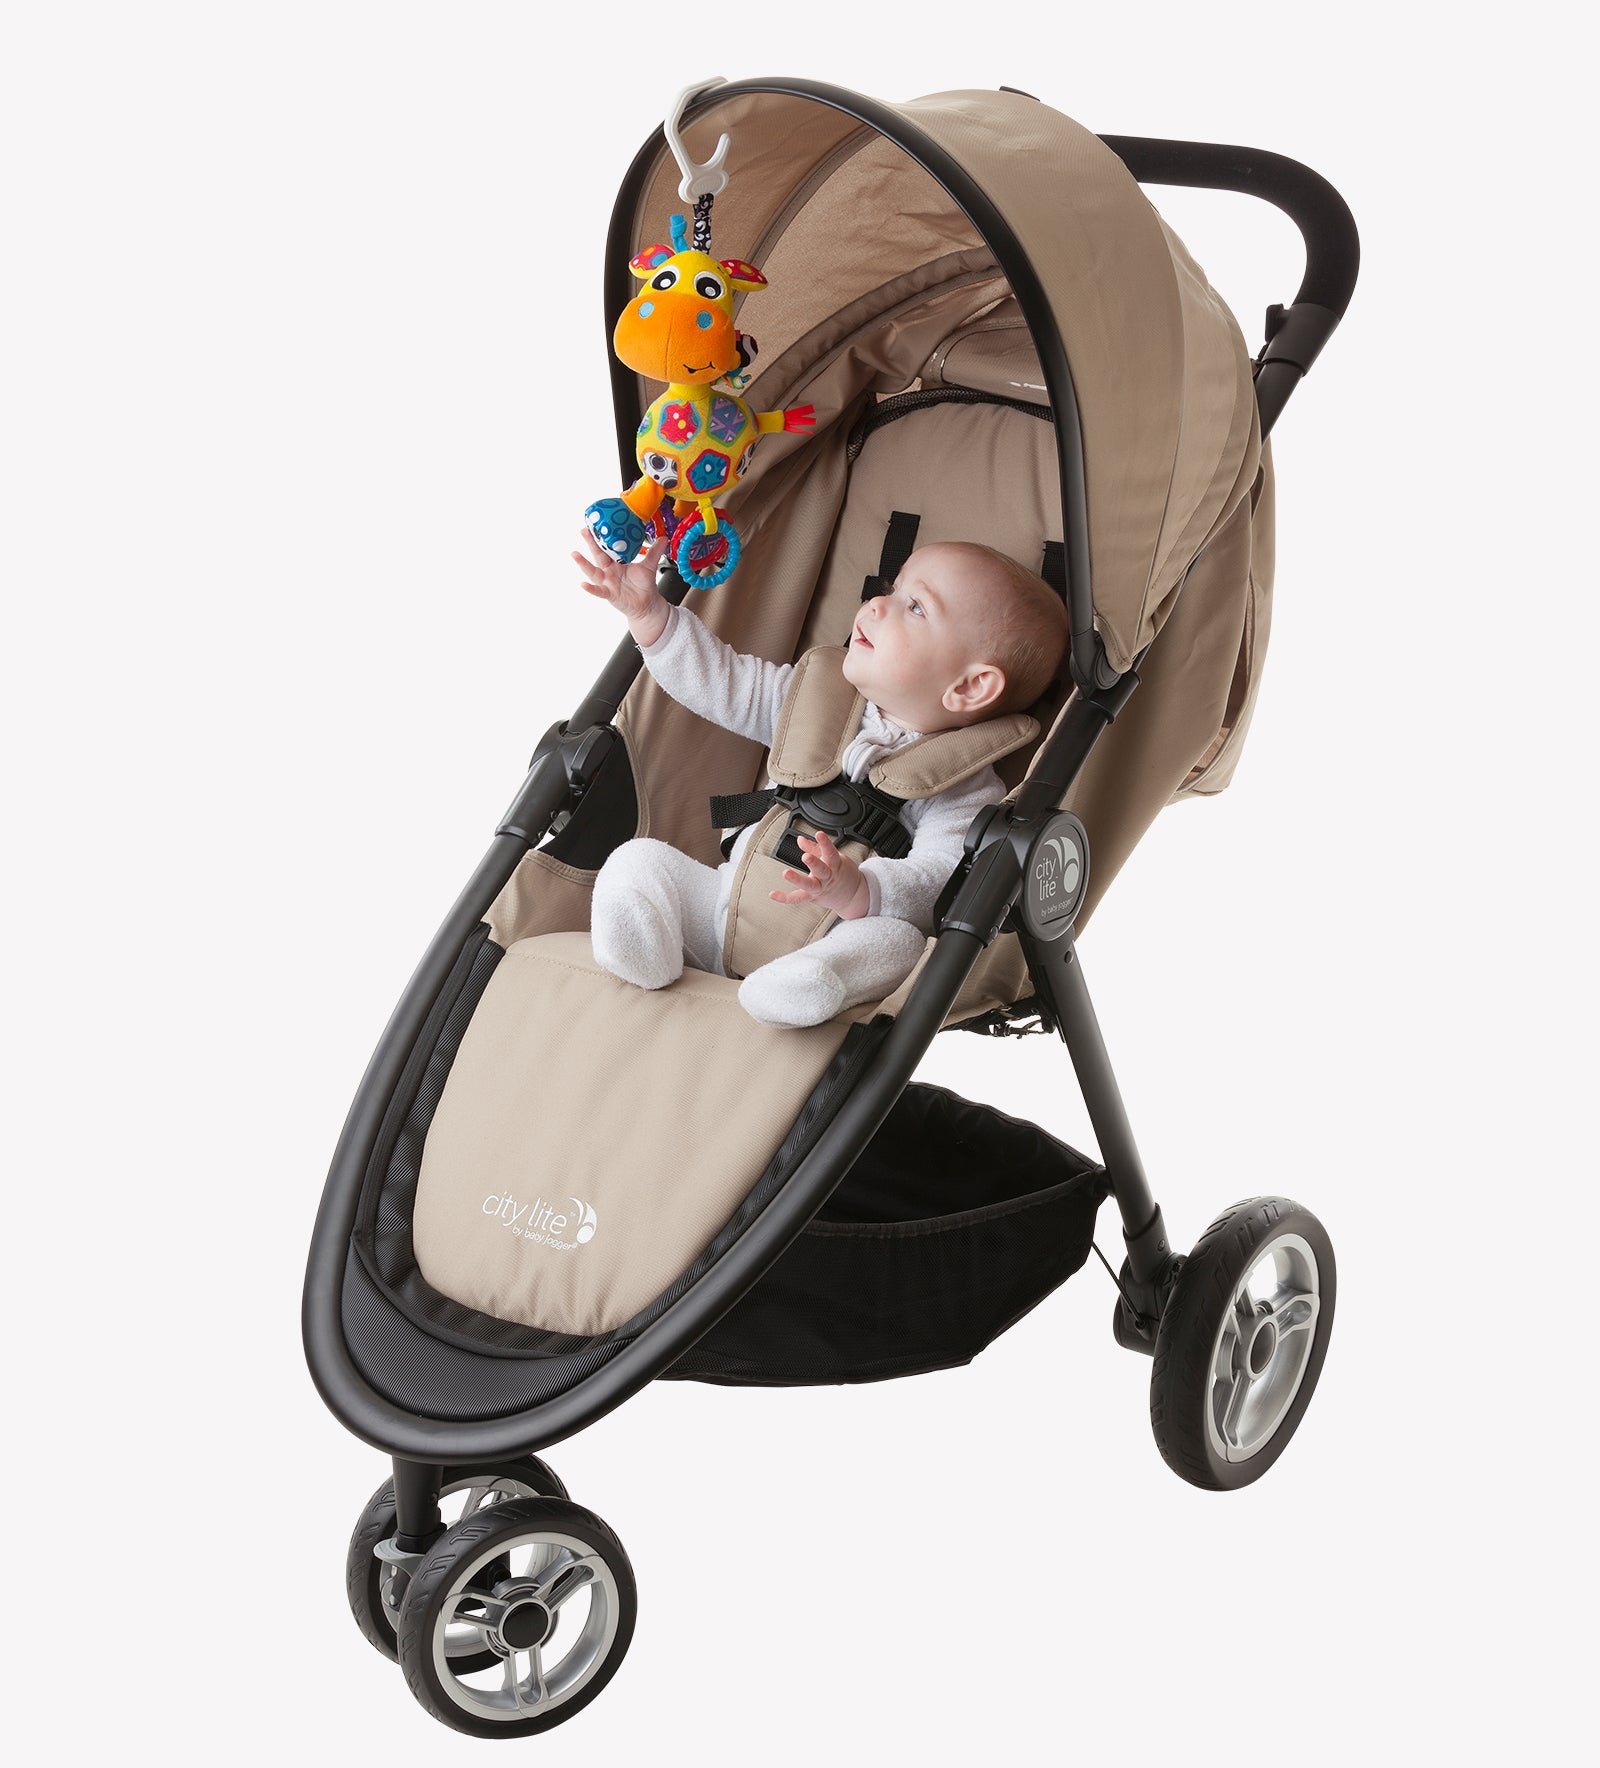 A baby in a stroller trying to reach Playgro Giraffe Stroller toys hanging in  the stroller canopy